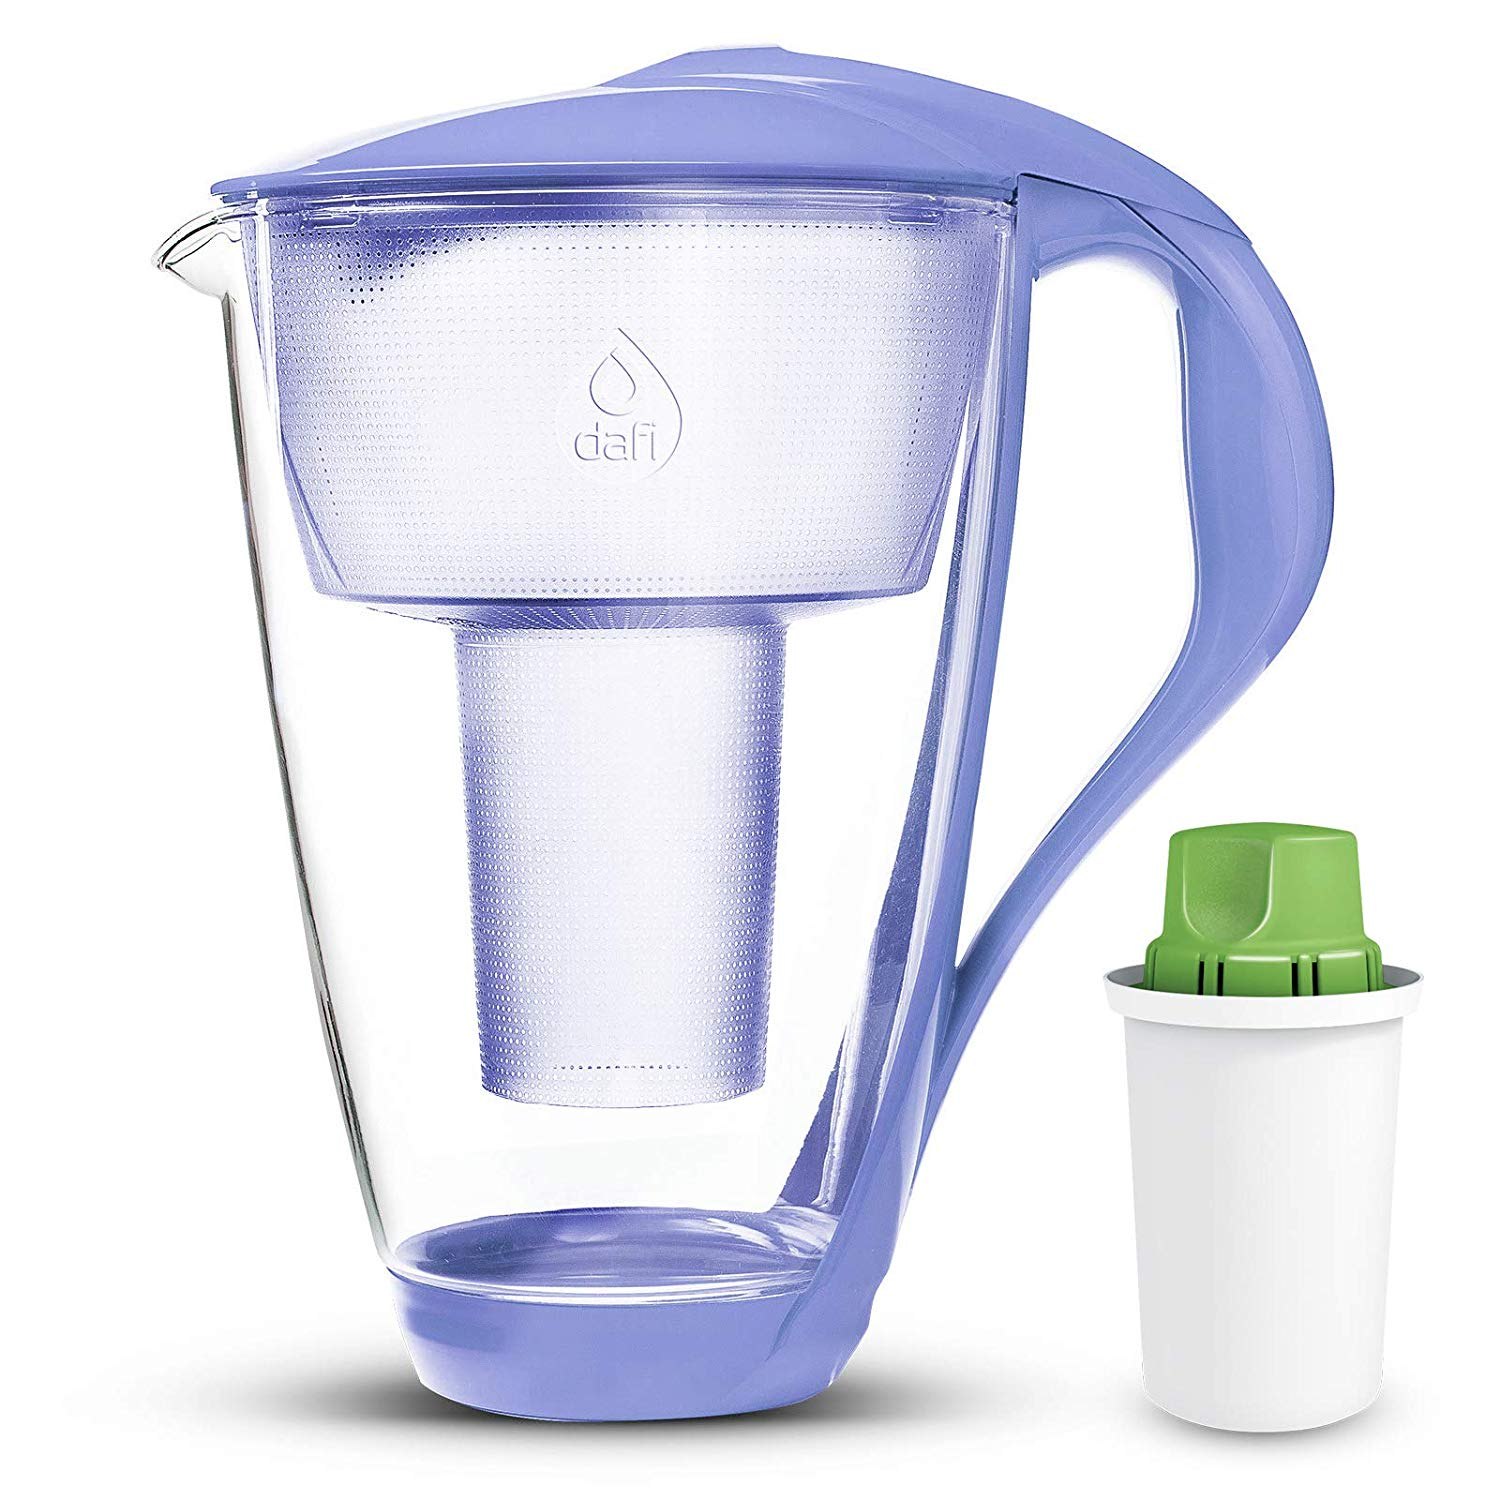 dafi-alkaline-up-crystal-pitcher-8-cups-innovative-alkaline-water-system-glass-water-pitcher-highest-quality-laboratory-borosilicate-glass-with-ergonomic-bpa-free-plastic-parts-violet-1.jpg